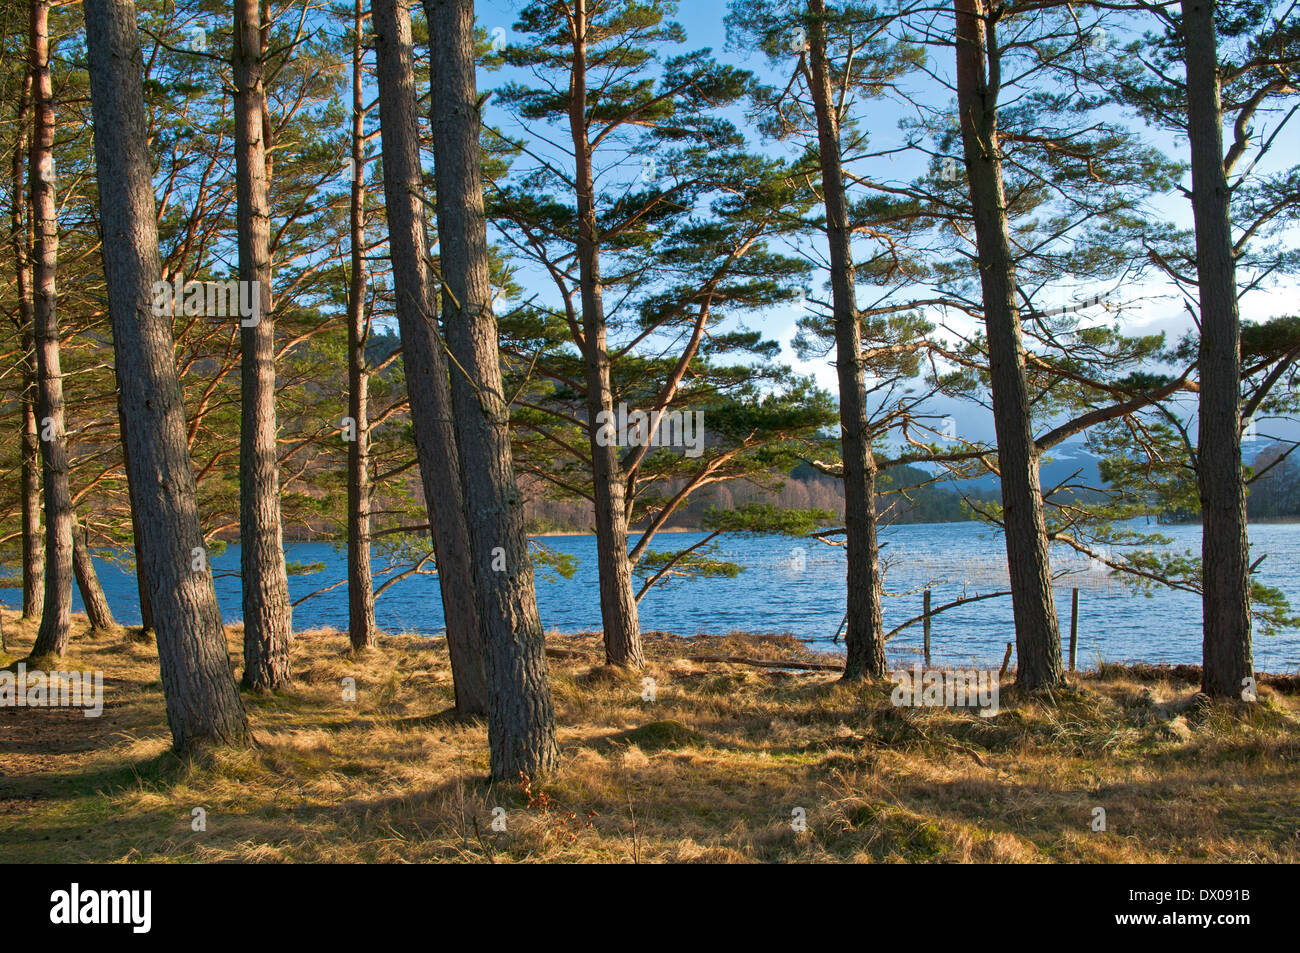 A stand of Scots Pines at the edge of Loch Pityoulish lit by low winter sunshine, near Aviemore, Scottish Highlands, Scotland UK - Stock Image